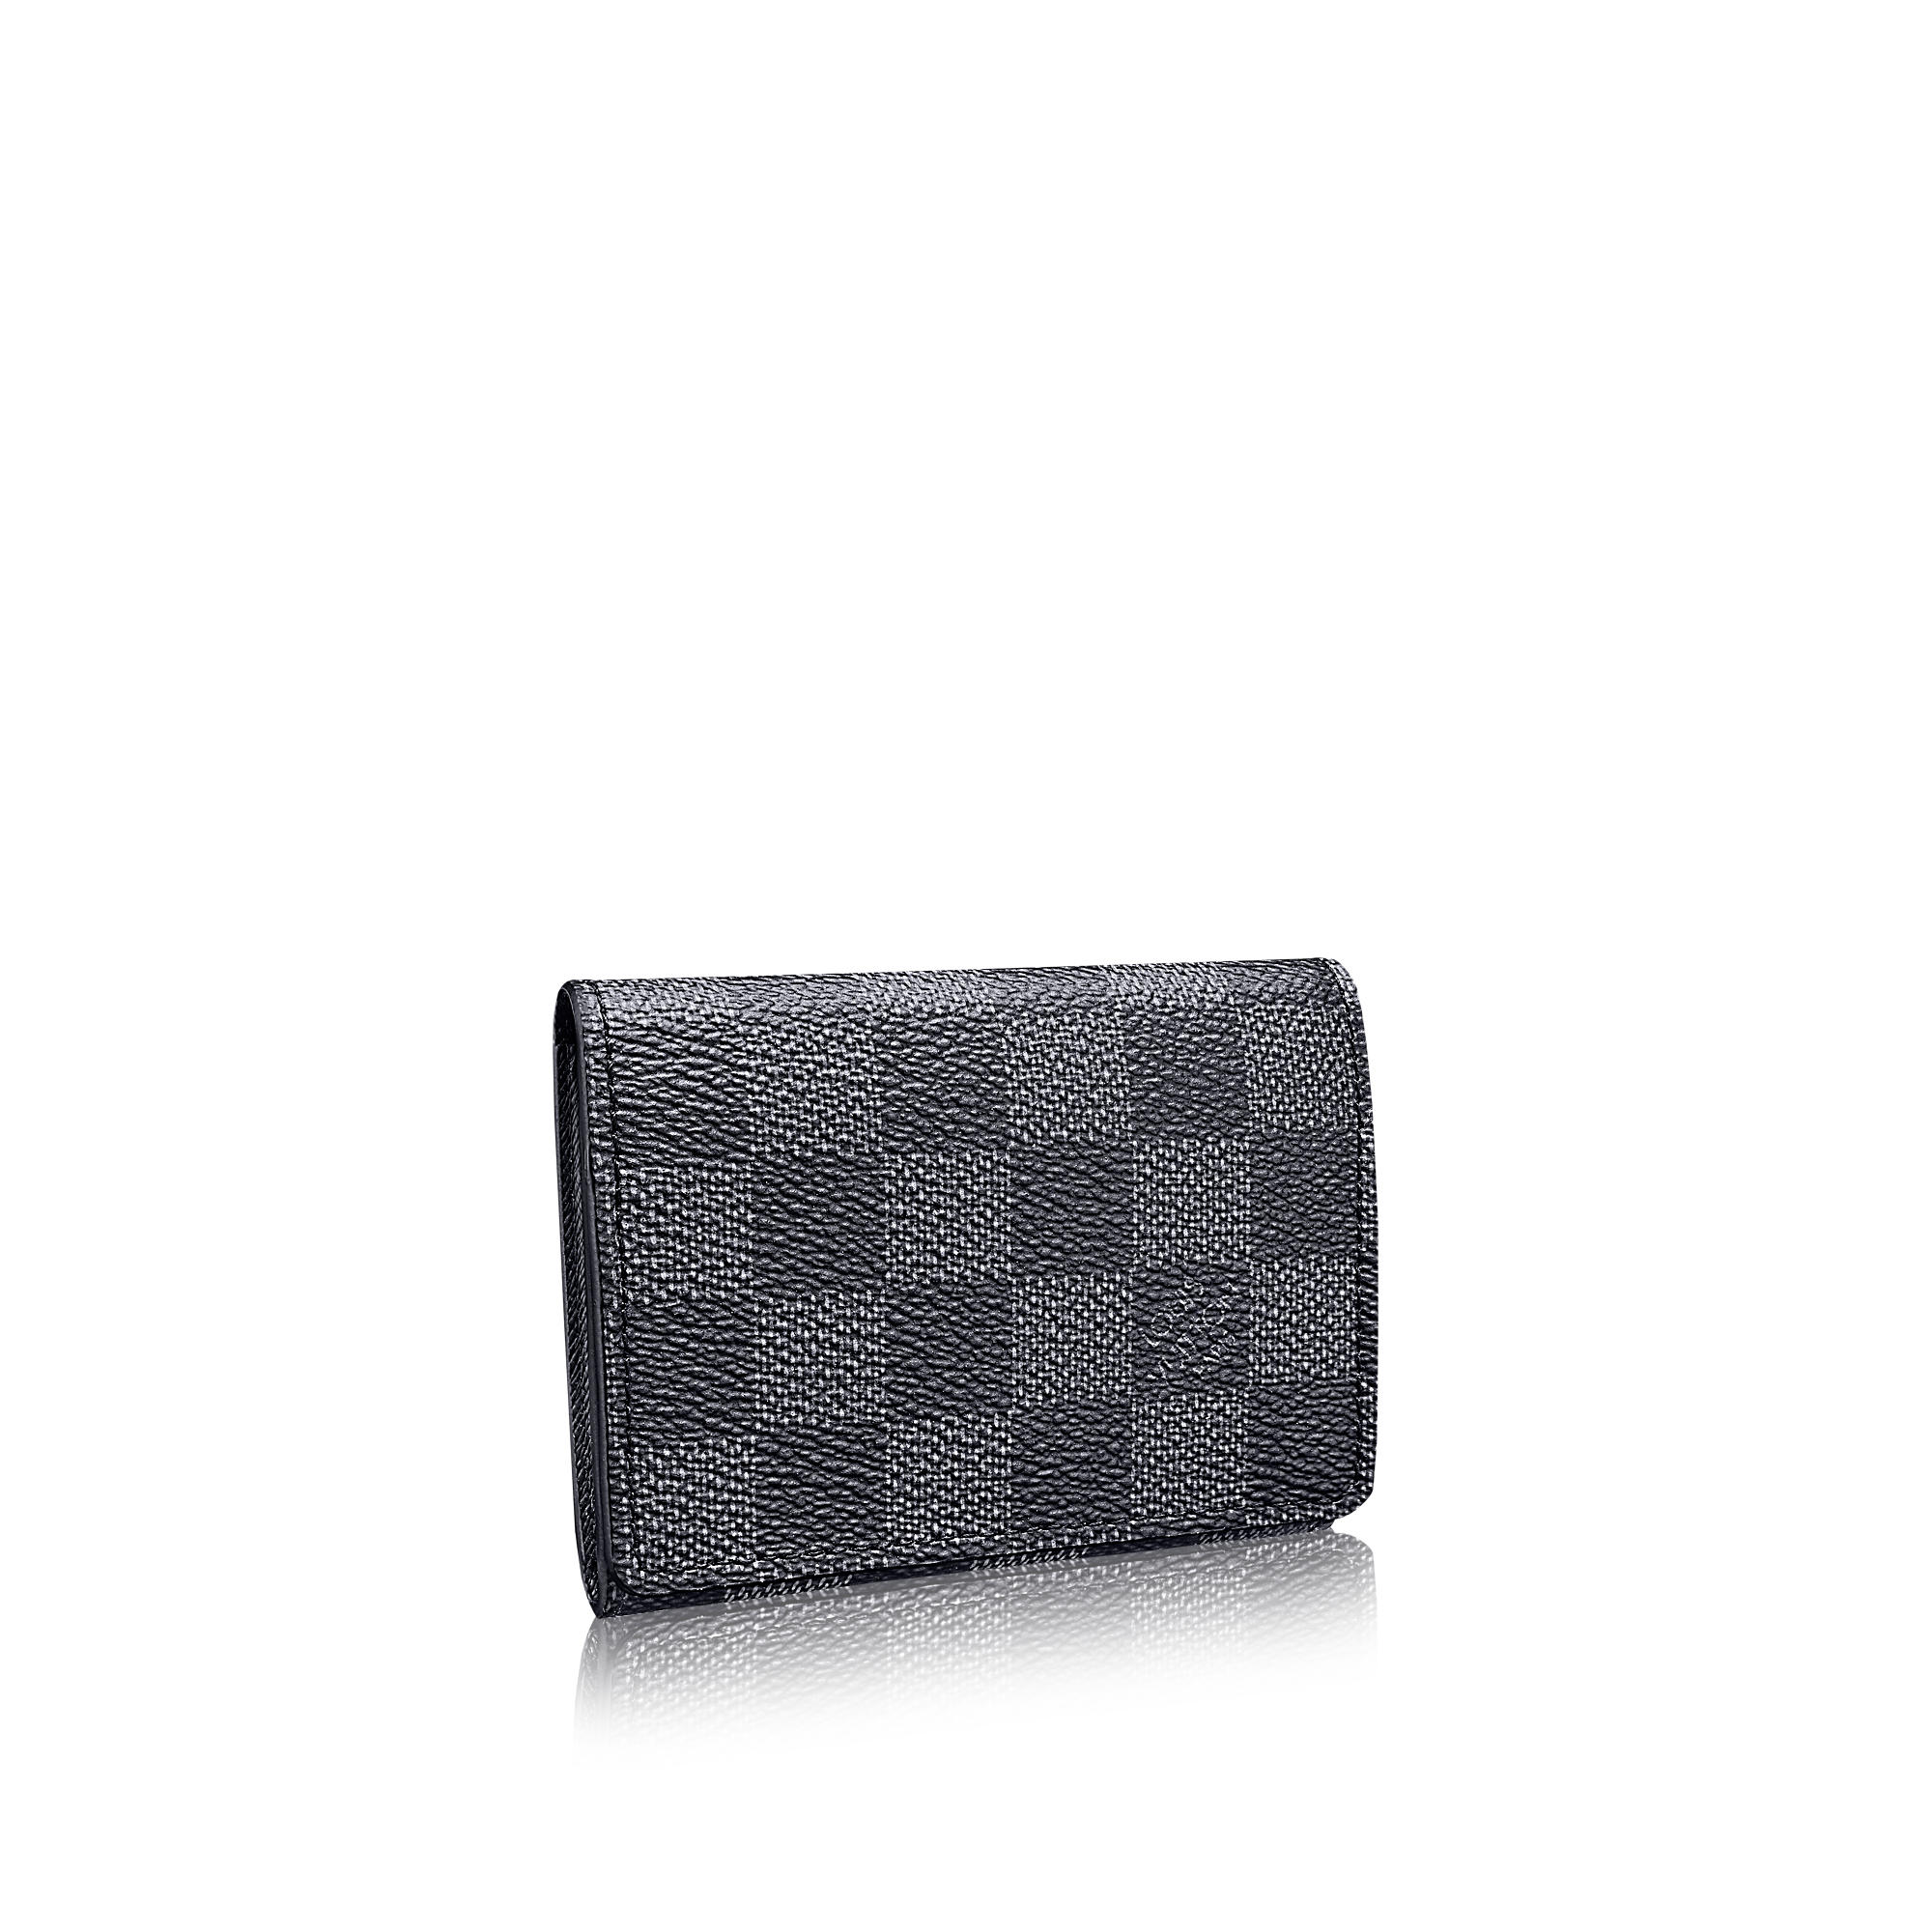 Louis Vuitton Uomo Enveloppe Carte De Visite